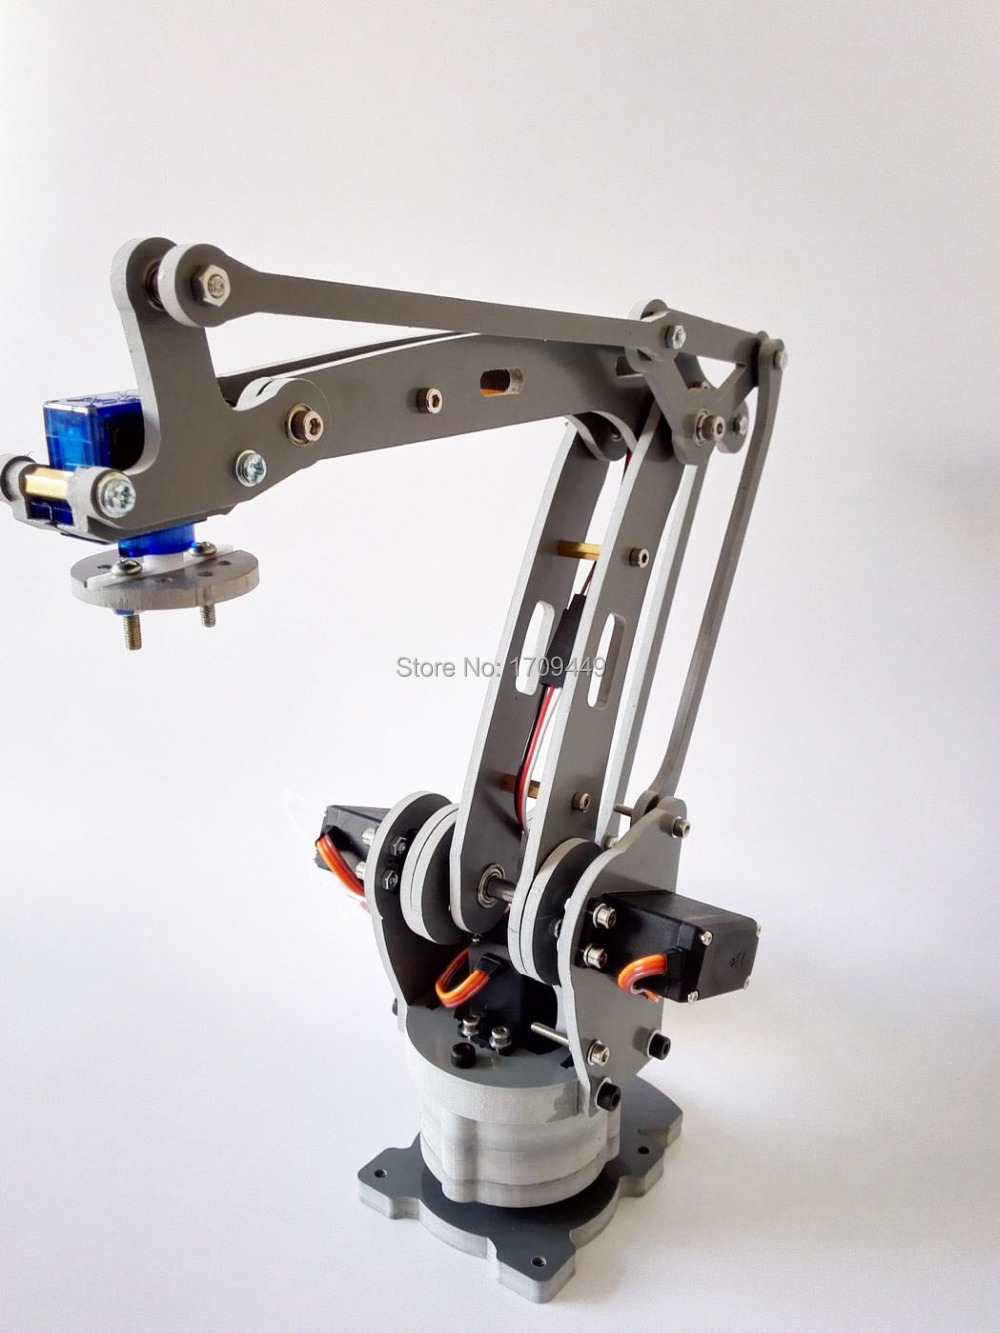 Robotic Palletizing Arms : Free shipping new version robot arm axis stacker servos